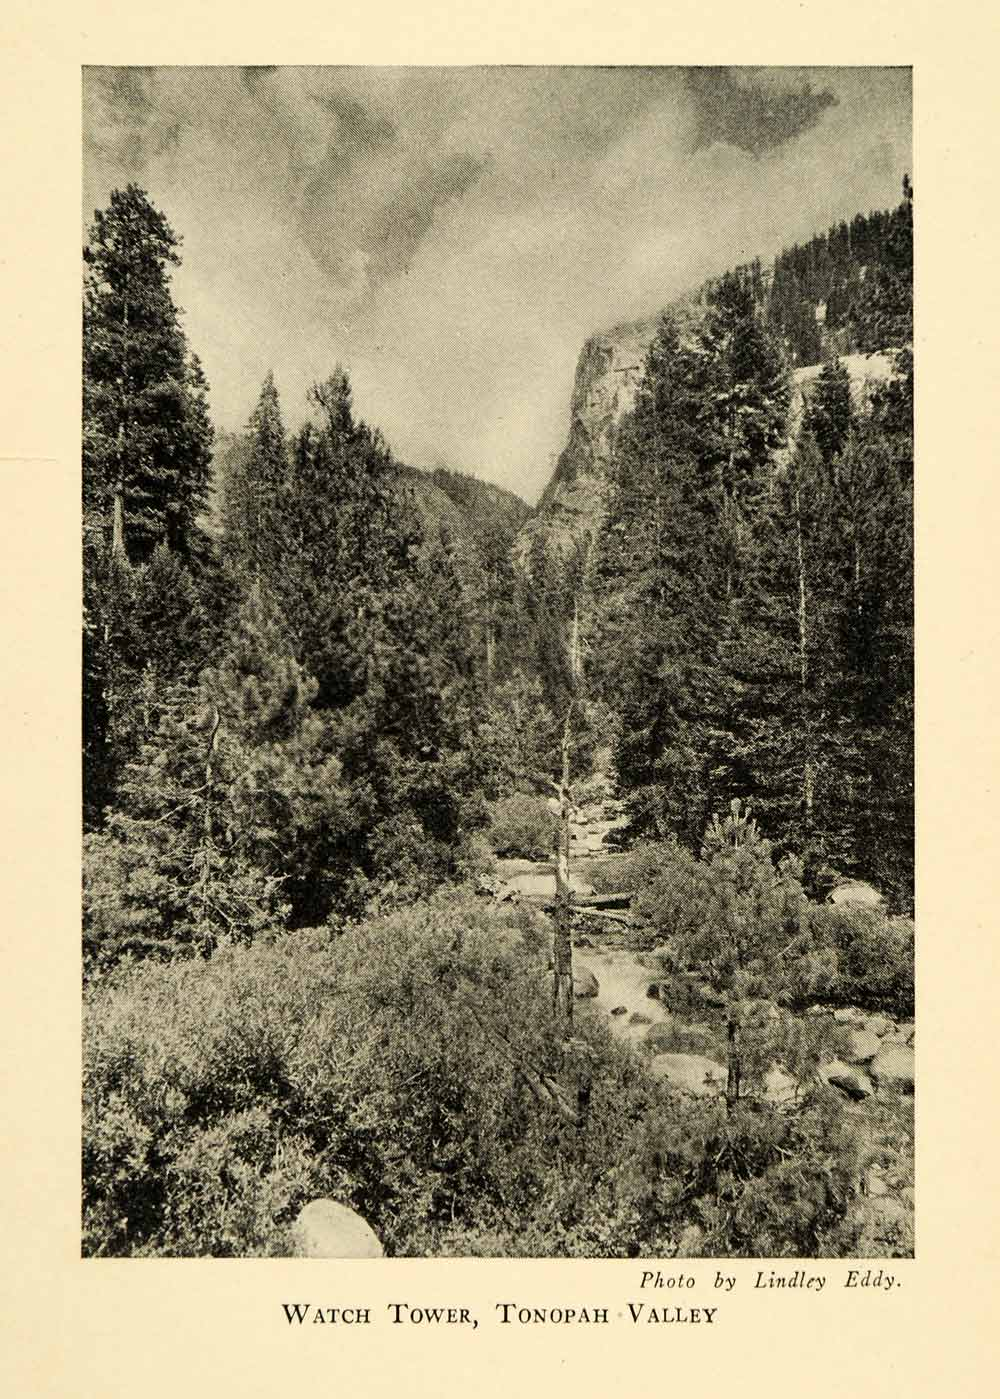 1928 Print Watch Tower Tonopah Valley Sequoia National Park California XGM6